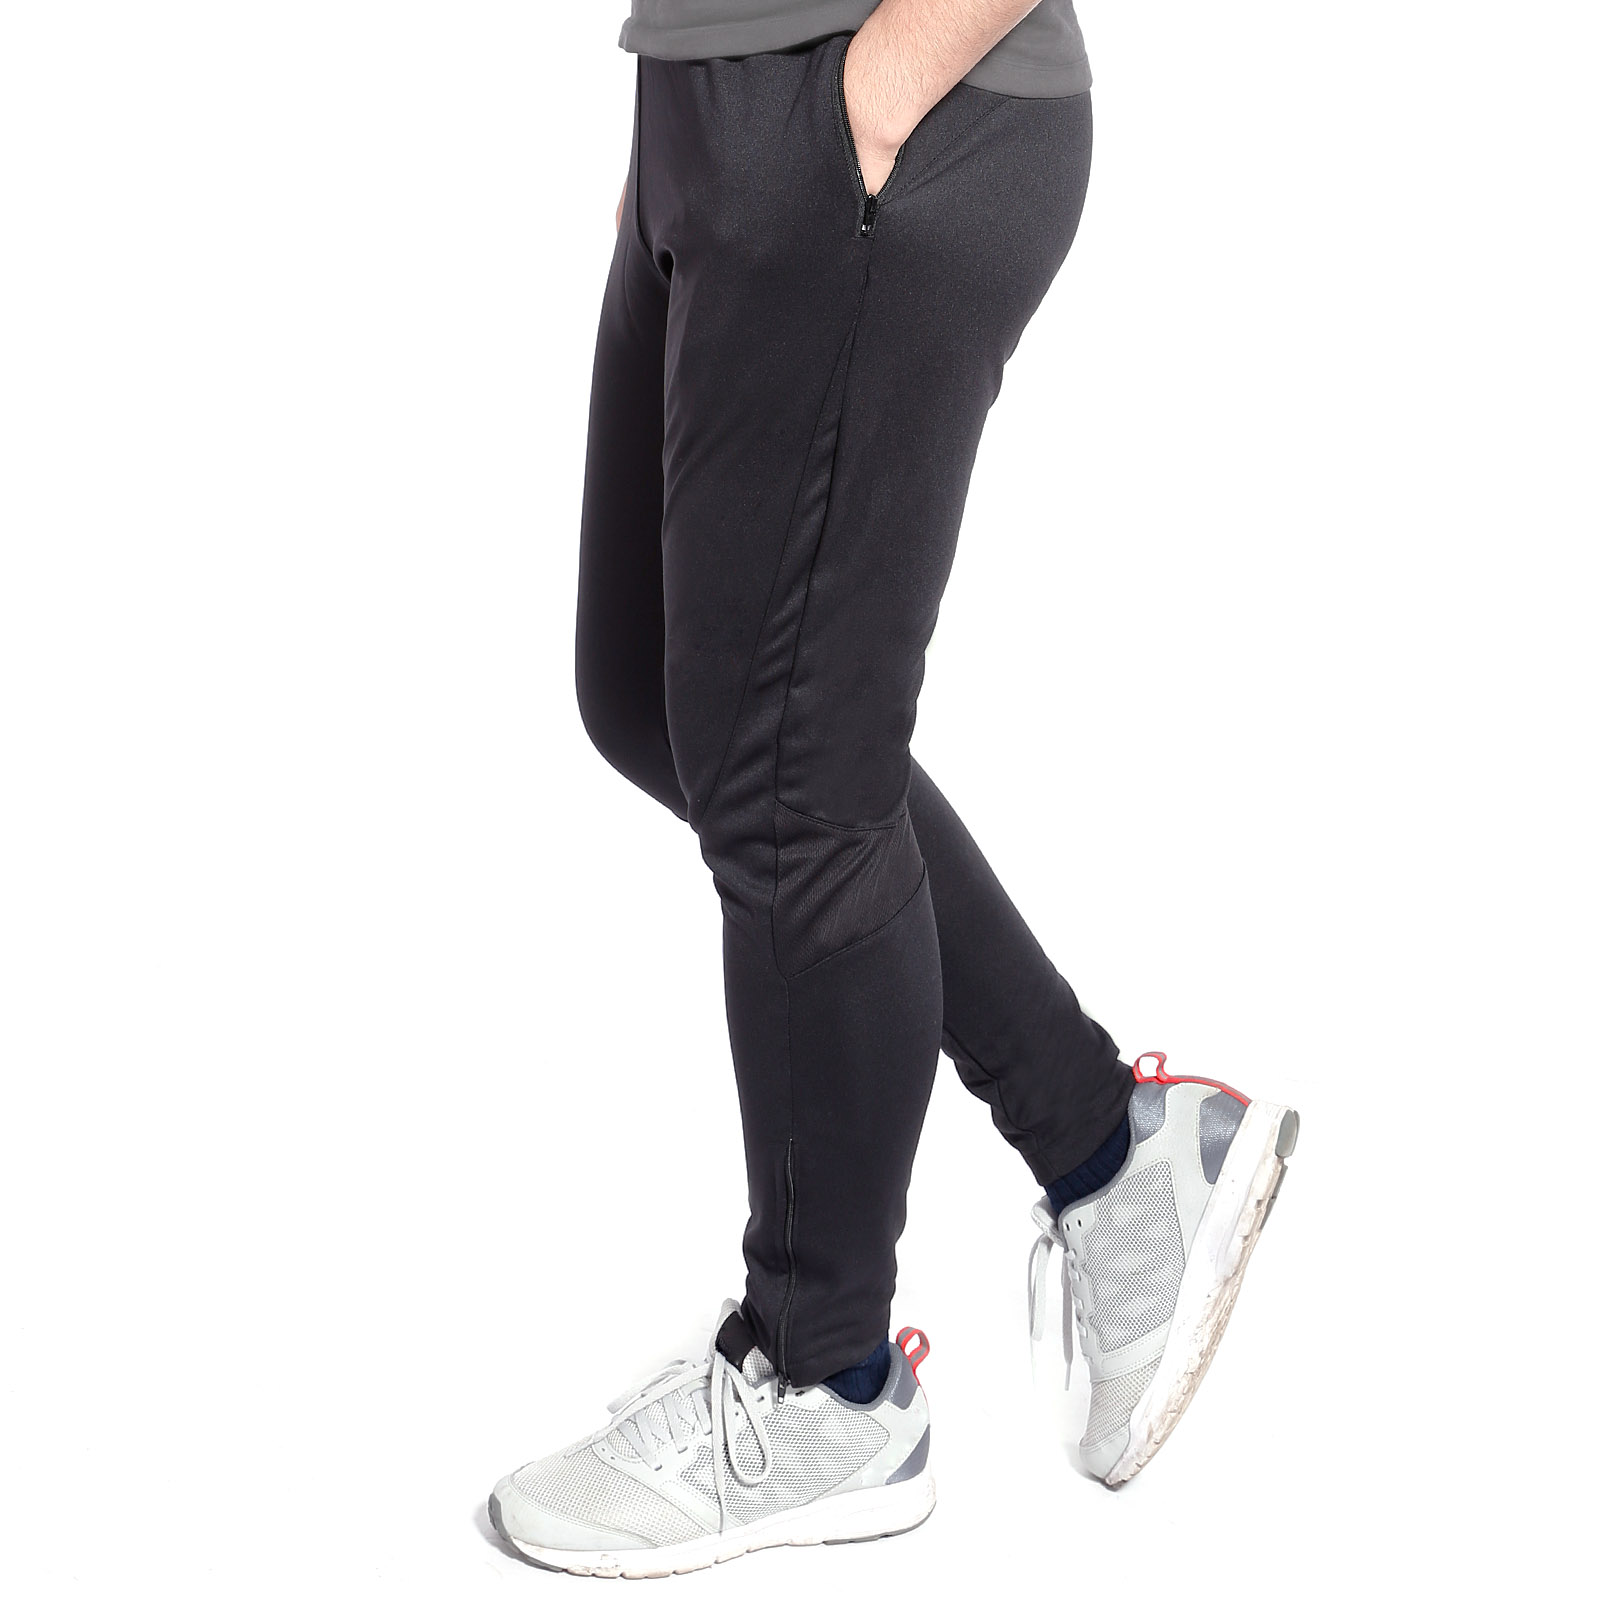 sporthose laufhose fitnesshose herren lang trainingshose skinny sweatpants ebay. Black Bedroom Furniture Sets. Home Design Ideas